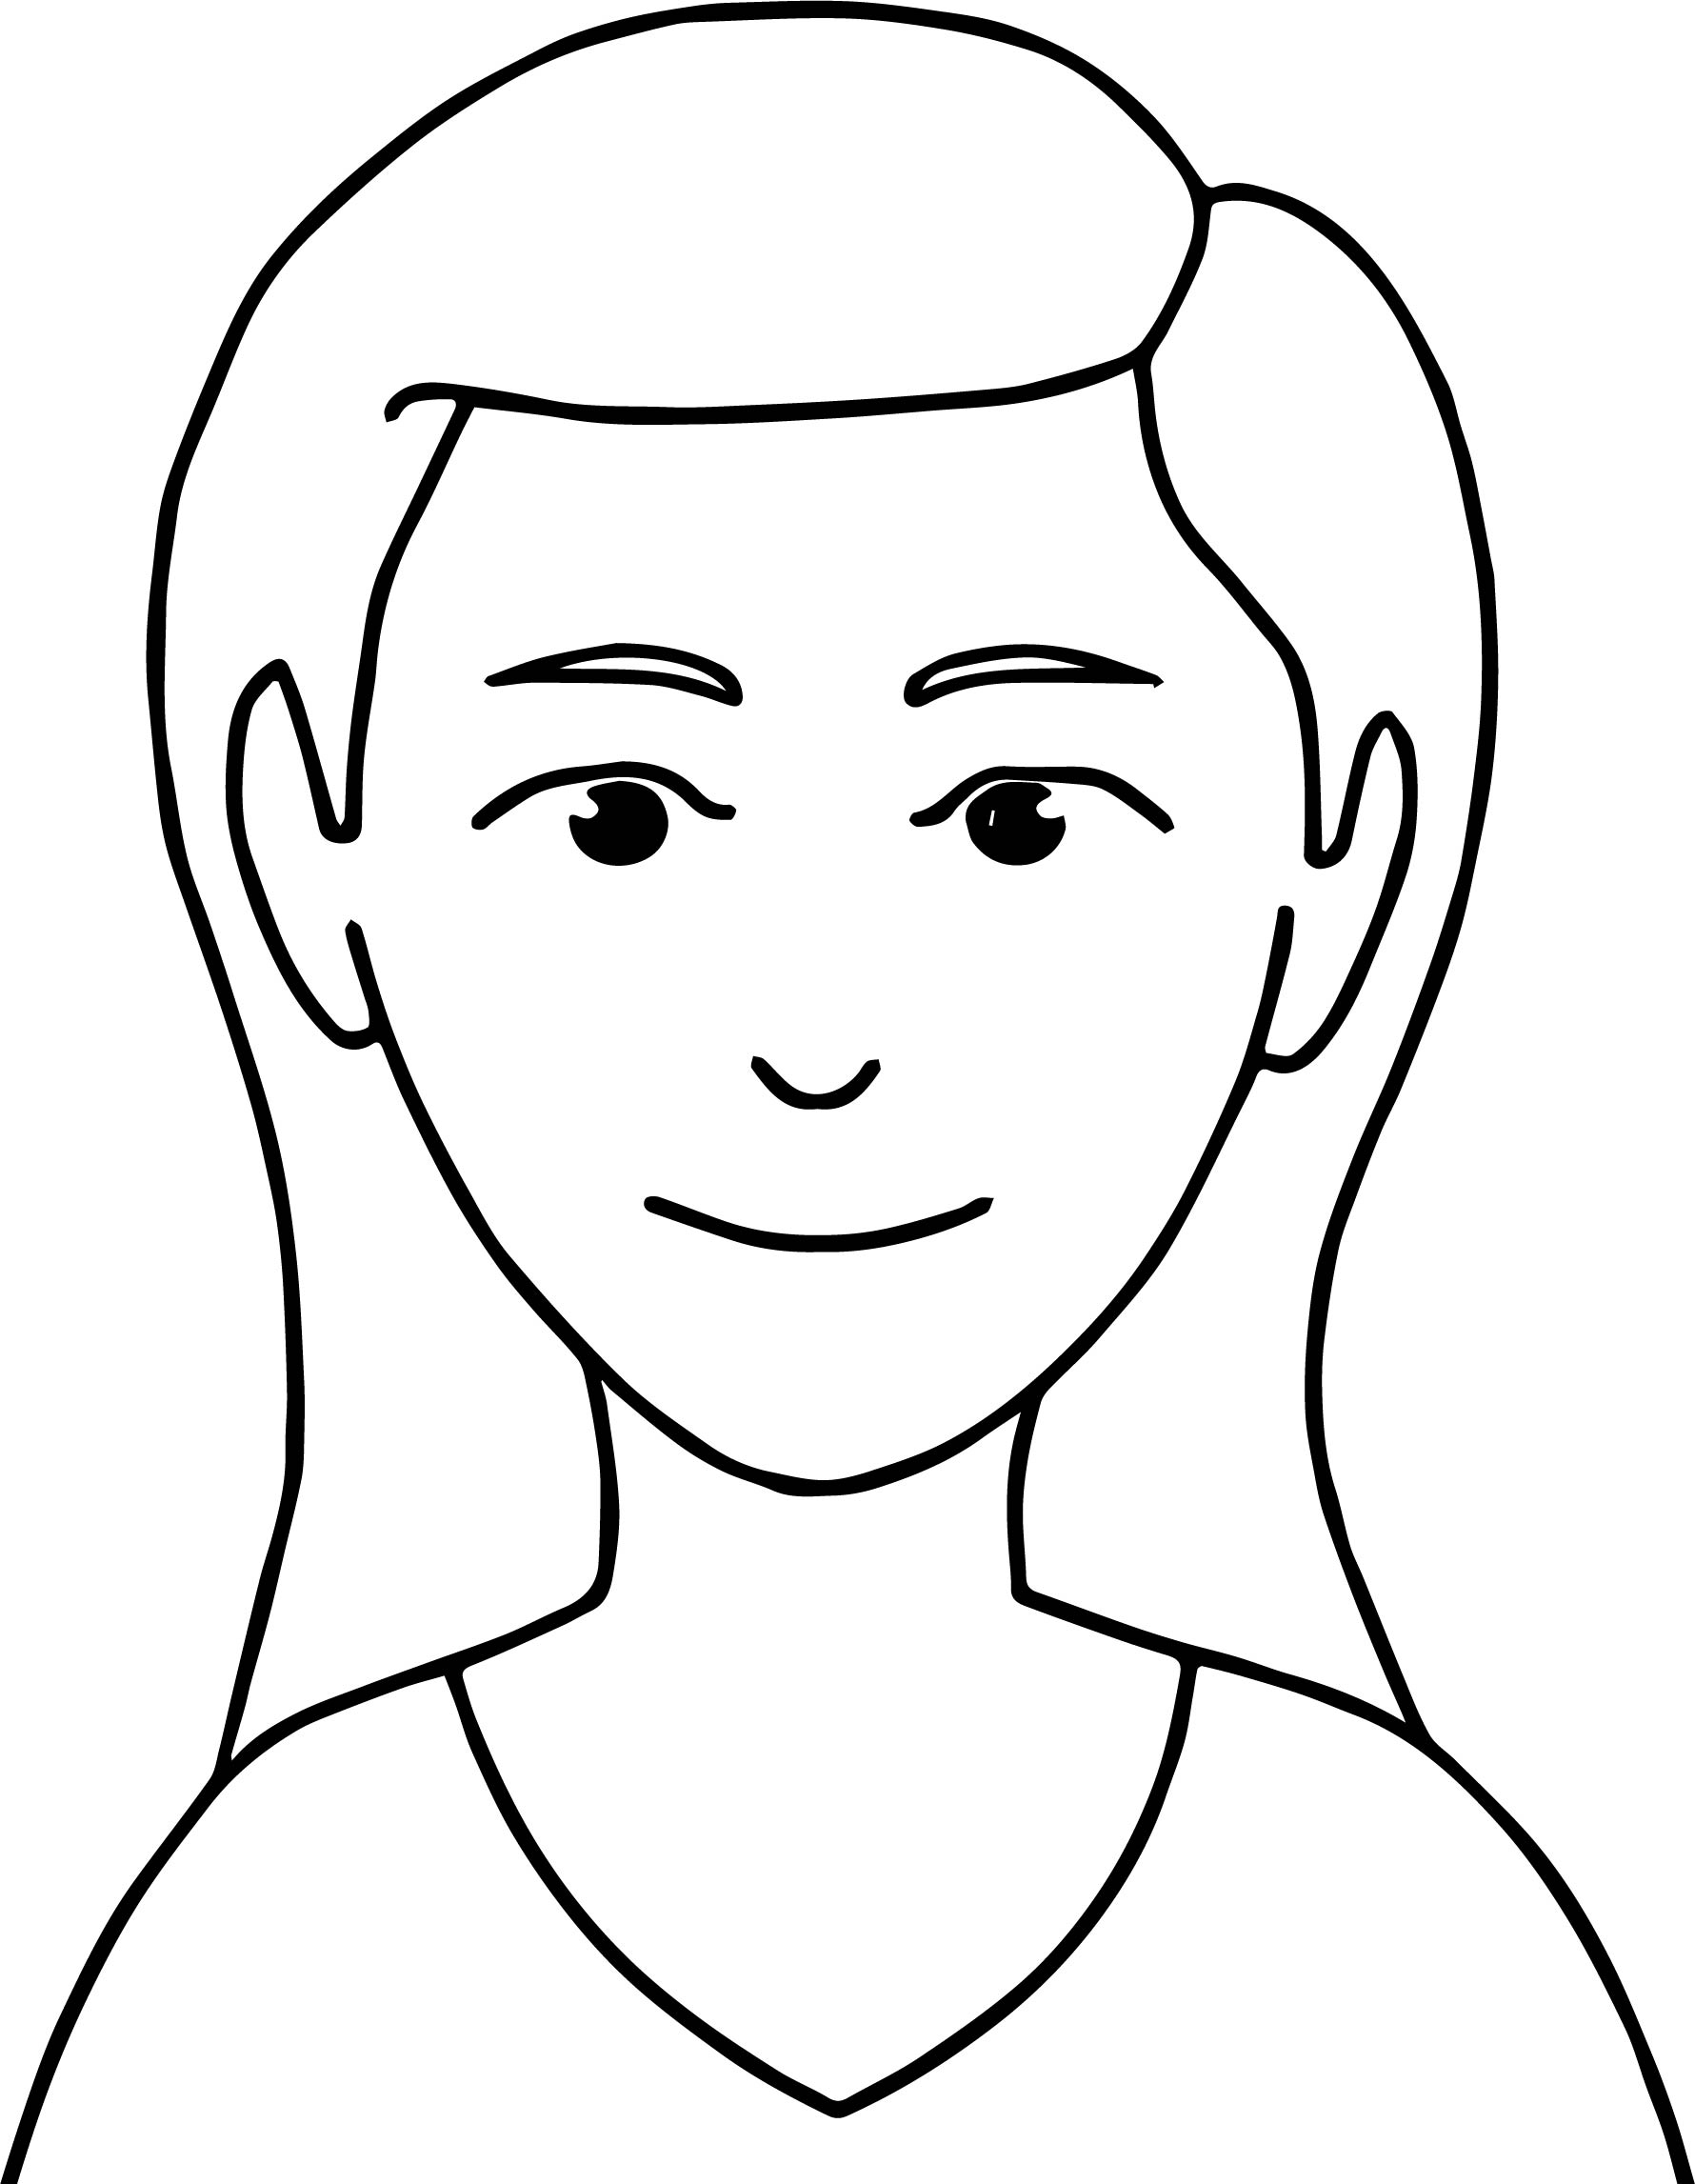 Expressions Calm Female Facial Expression Classroom Coloring Page